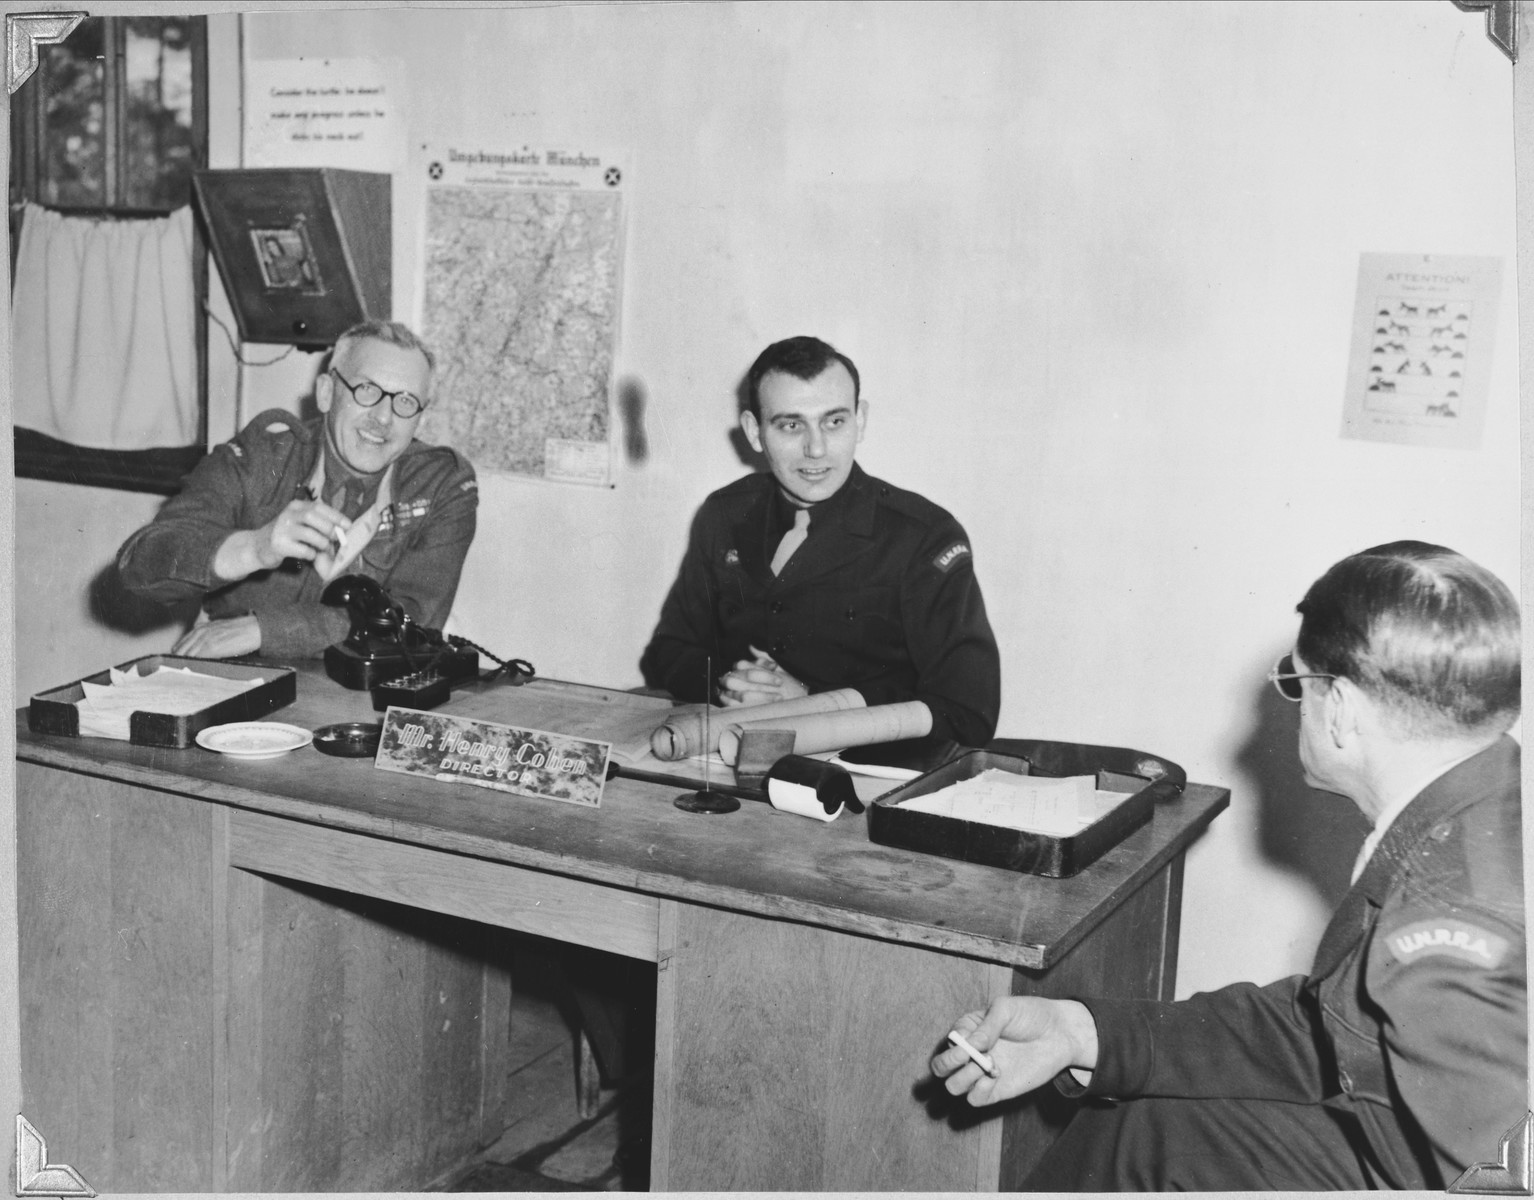 Henry Cohen, the UNRRA director of the Foehrenwald displaced persons' camp, meets with two other officers in his office.